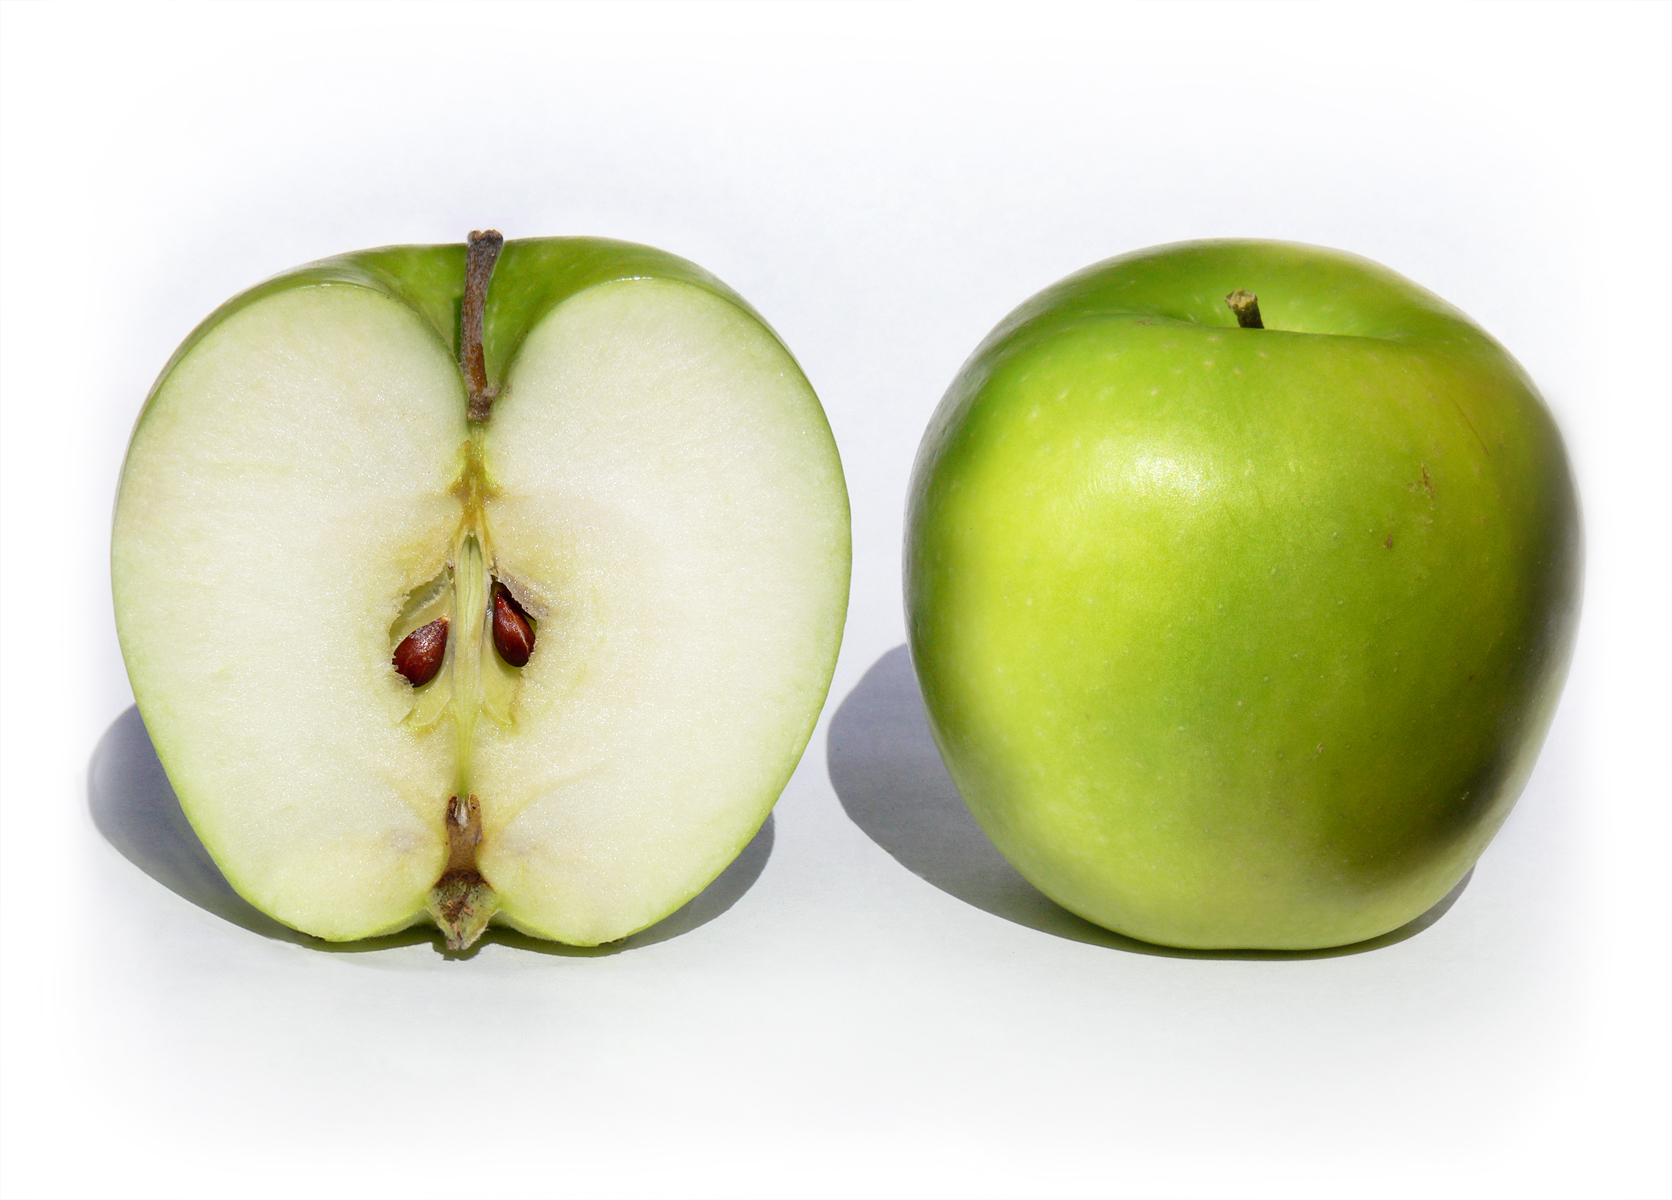 File:Granny Smith Apples.jpg - Wikipedia, the free encyclopedia